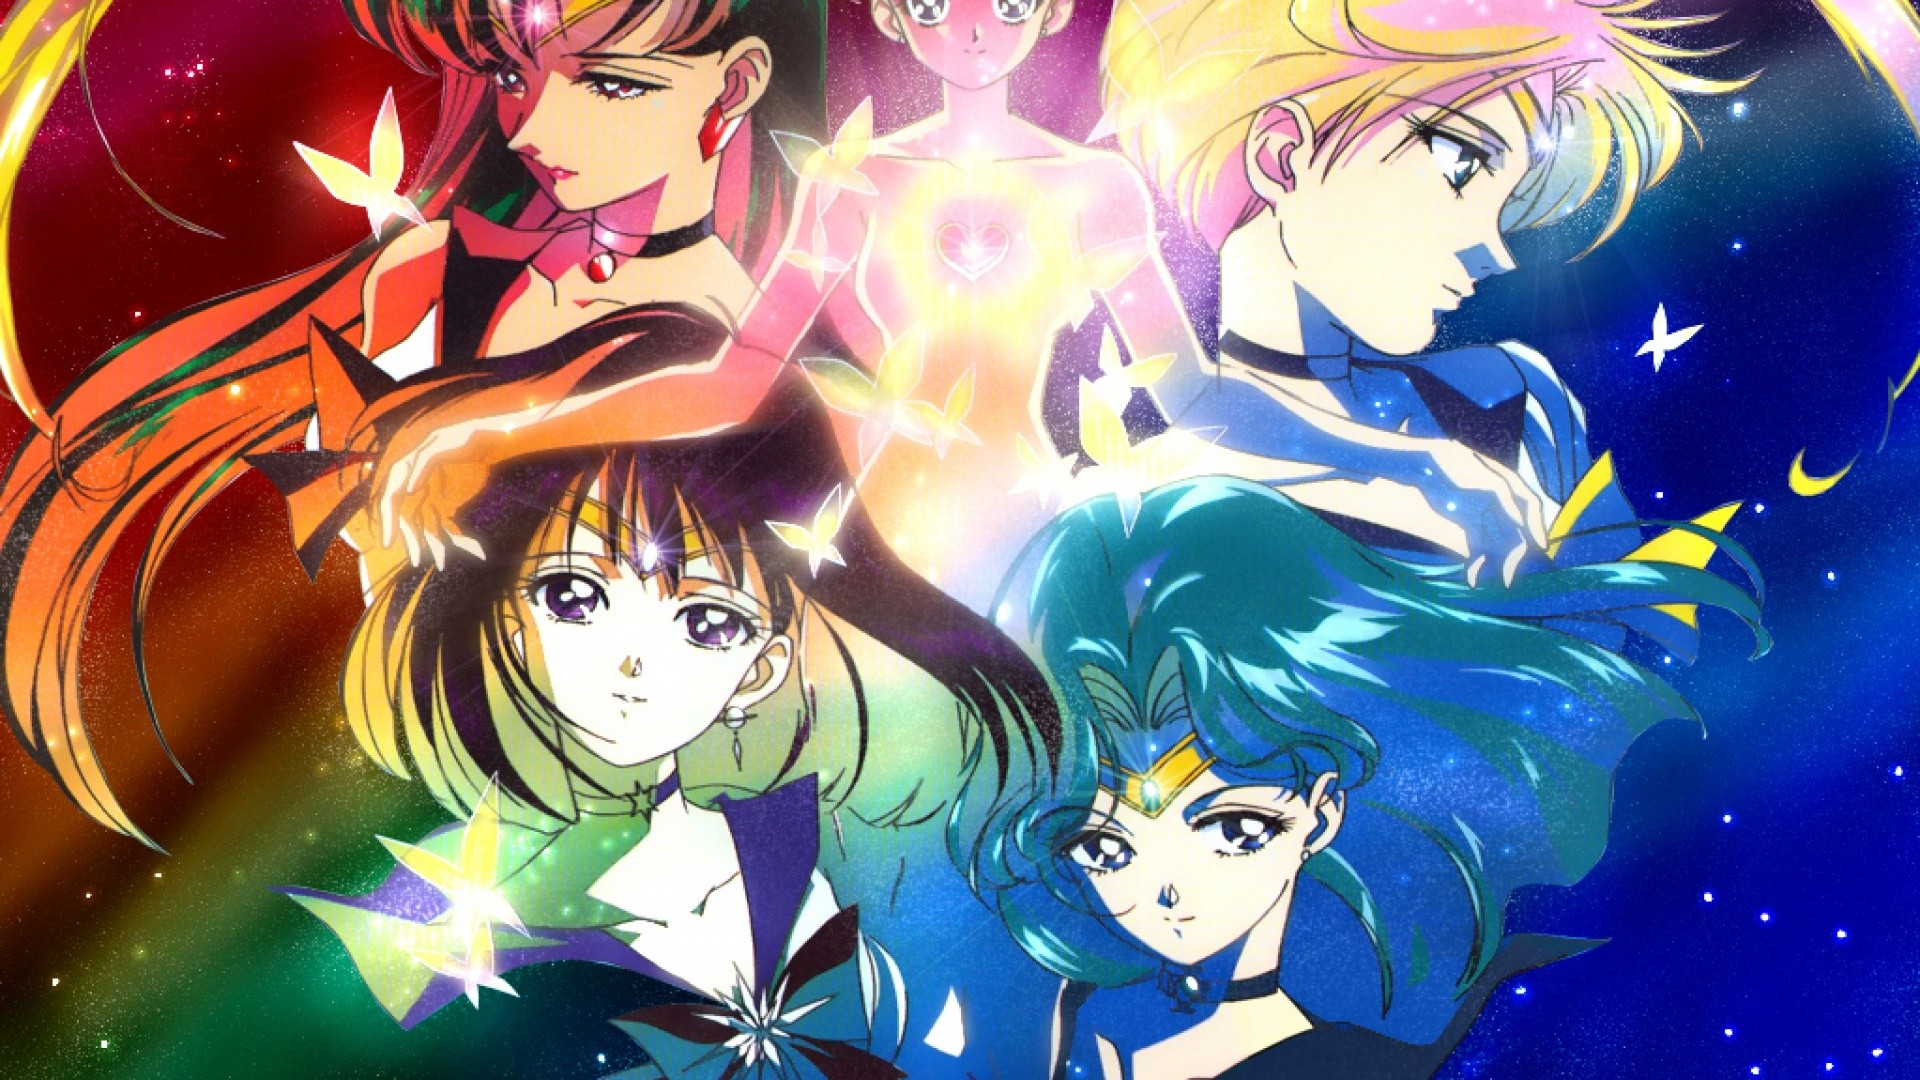 Sailor Moon 76. How to set wallpaper on your desktop? Click the  download link from above and set the wallpaper on the desktop from your OS.